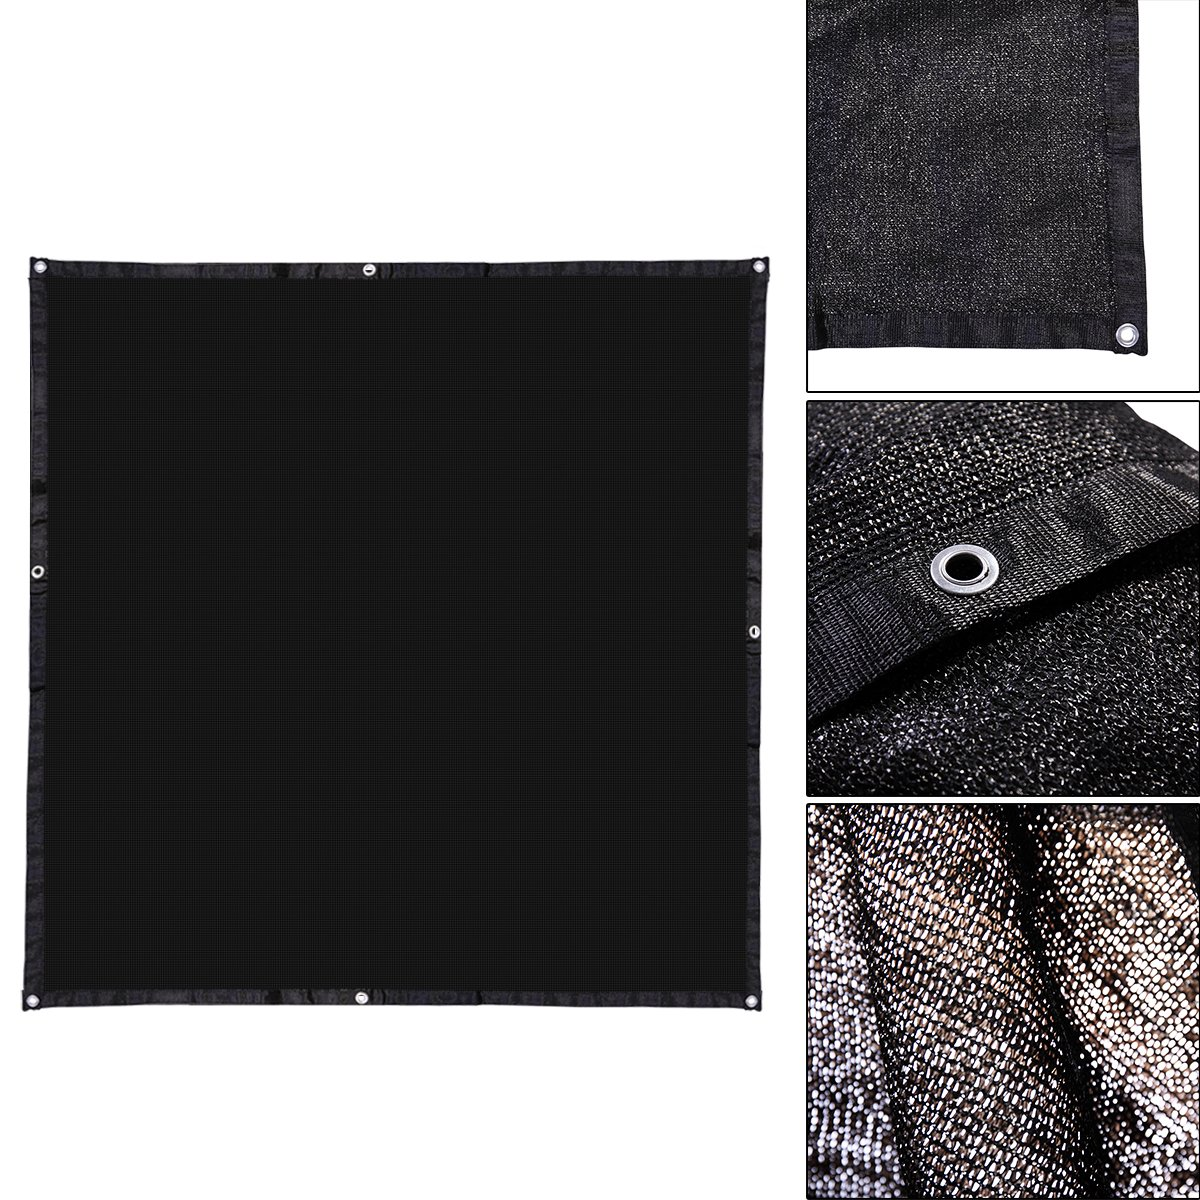 LAZYMOON 10' x 10' Black UV Rated Dog Kennel Shade Cover, Sunblock Shade Panel w/Grommets and Hems on 4 Sides